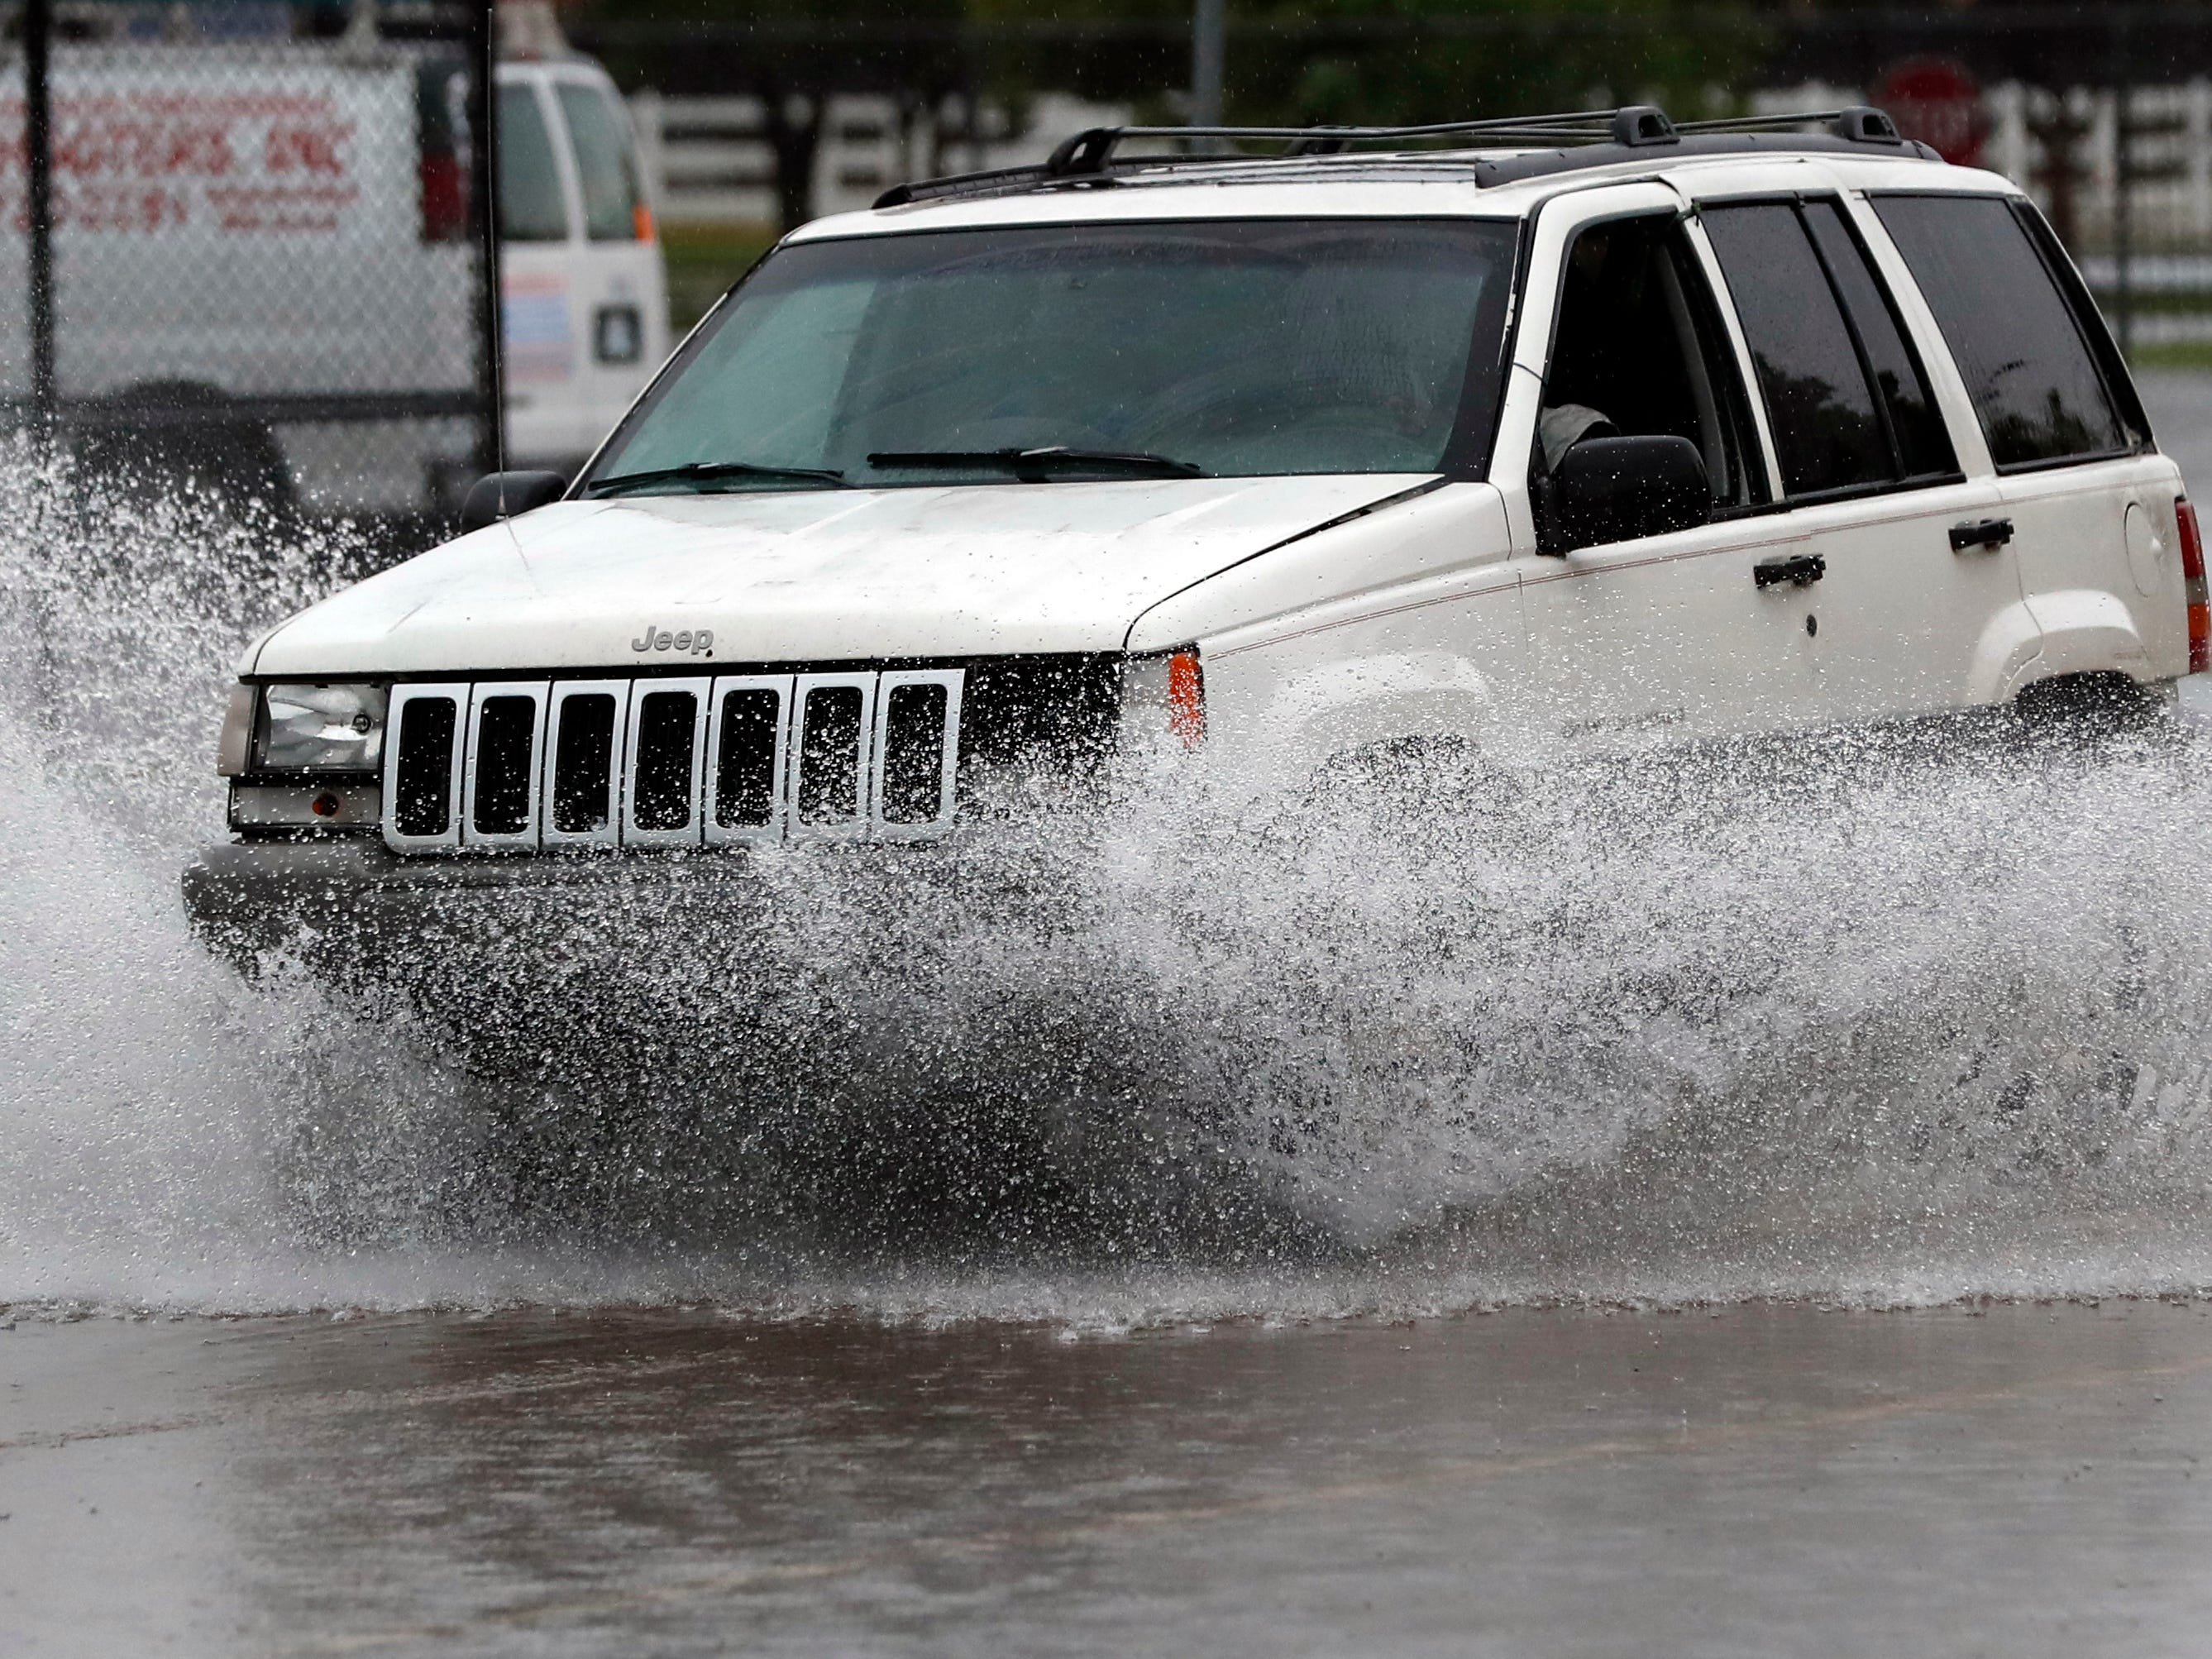 A vehicle drives through floodwaters near the state fairground in Jackson, Miss., Thursday, May 9, 2019, as strong winds, tornado warnings and substantial rains added to the flash flooding throughout Mississippi.